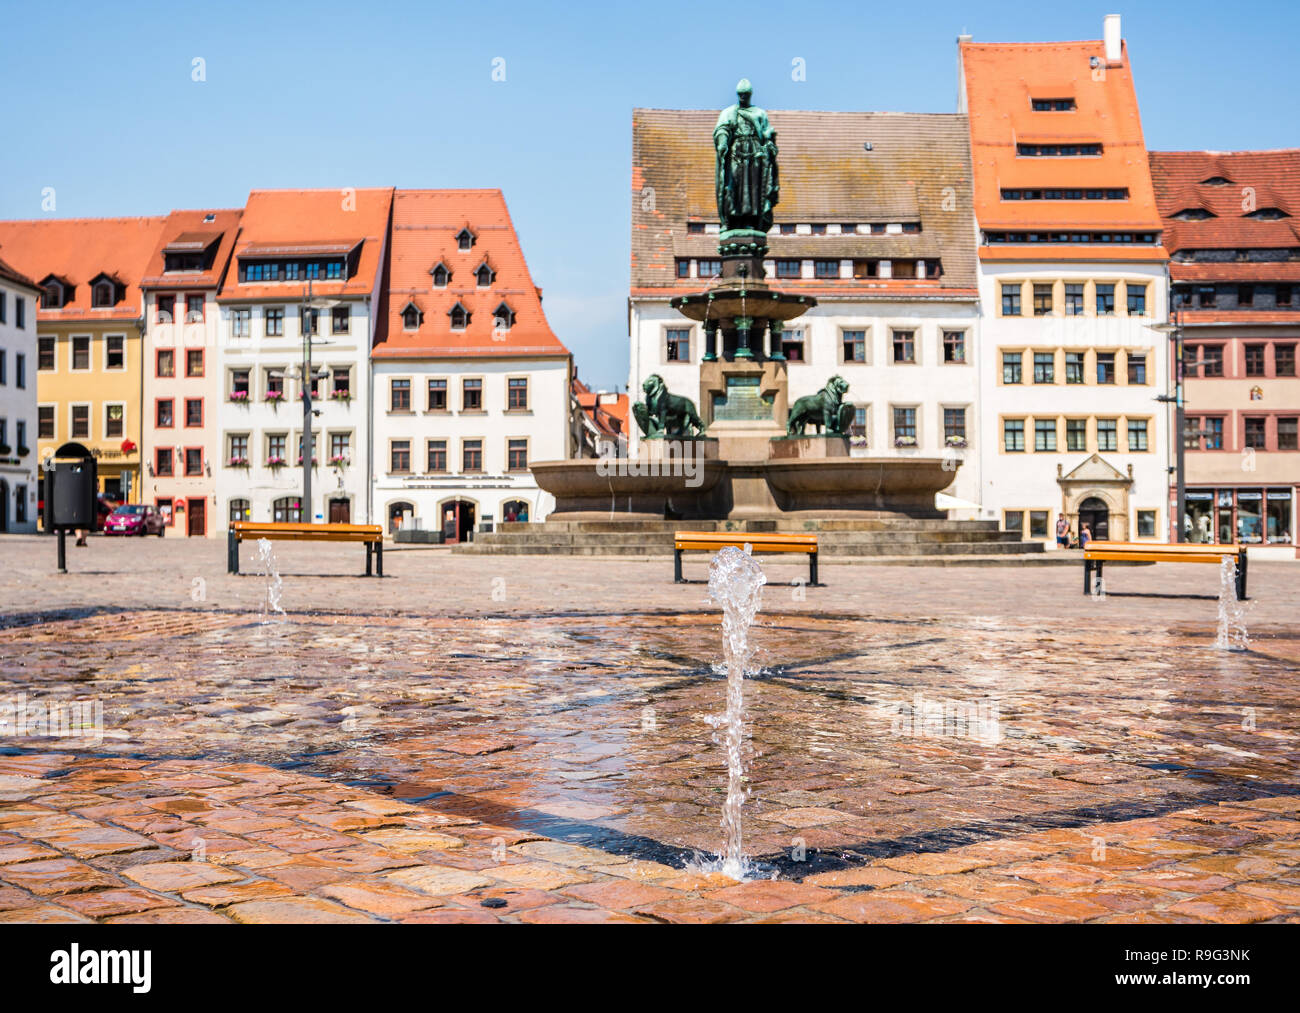 Upper Market in Freiberg - Stock Image